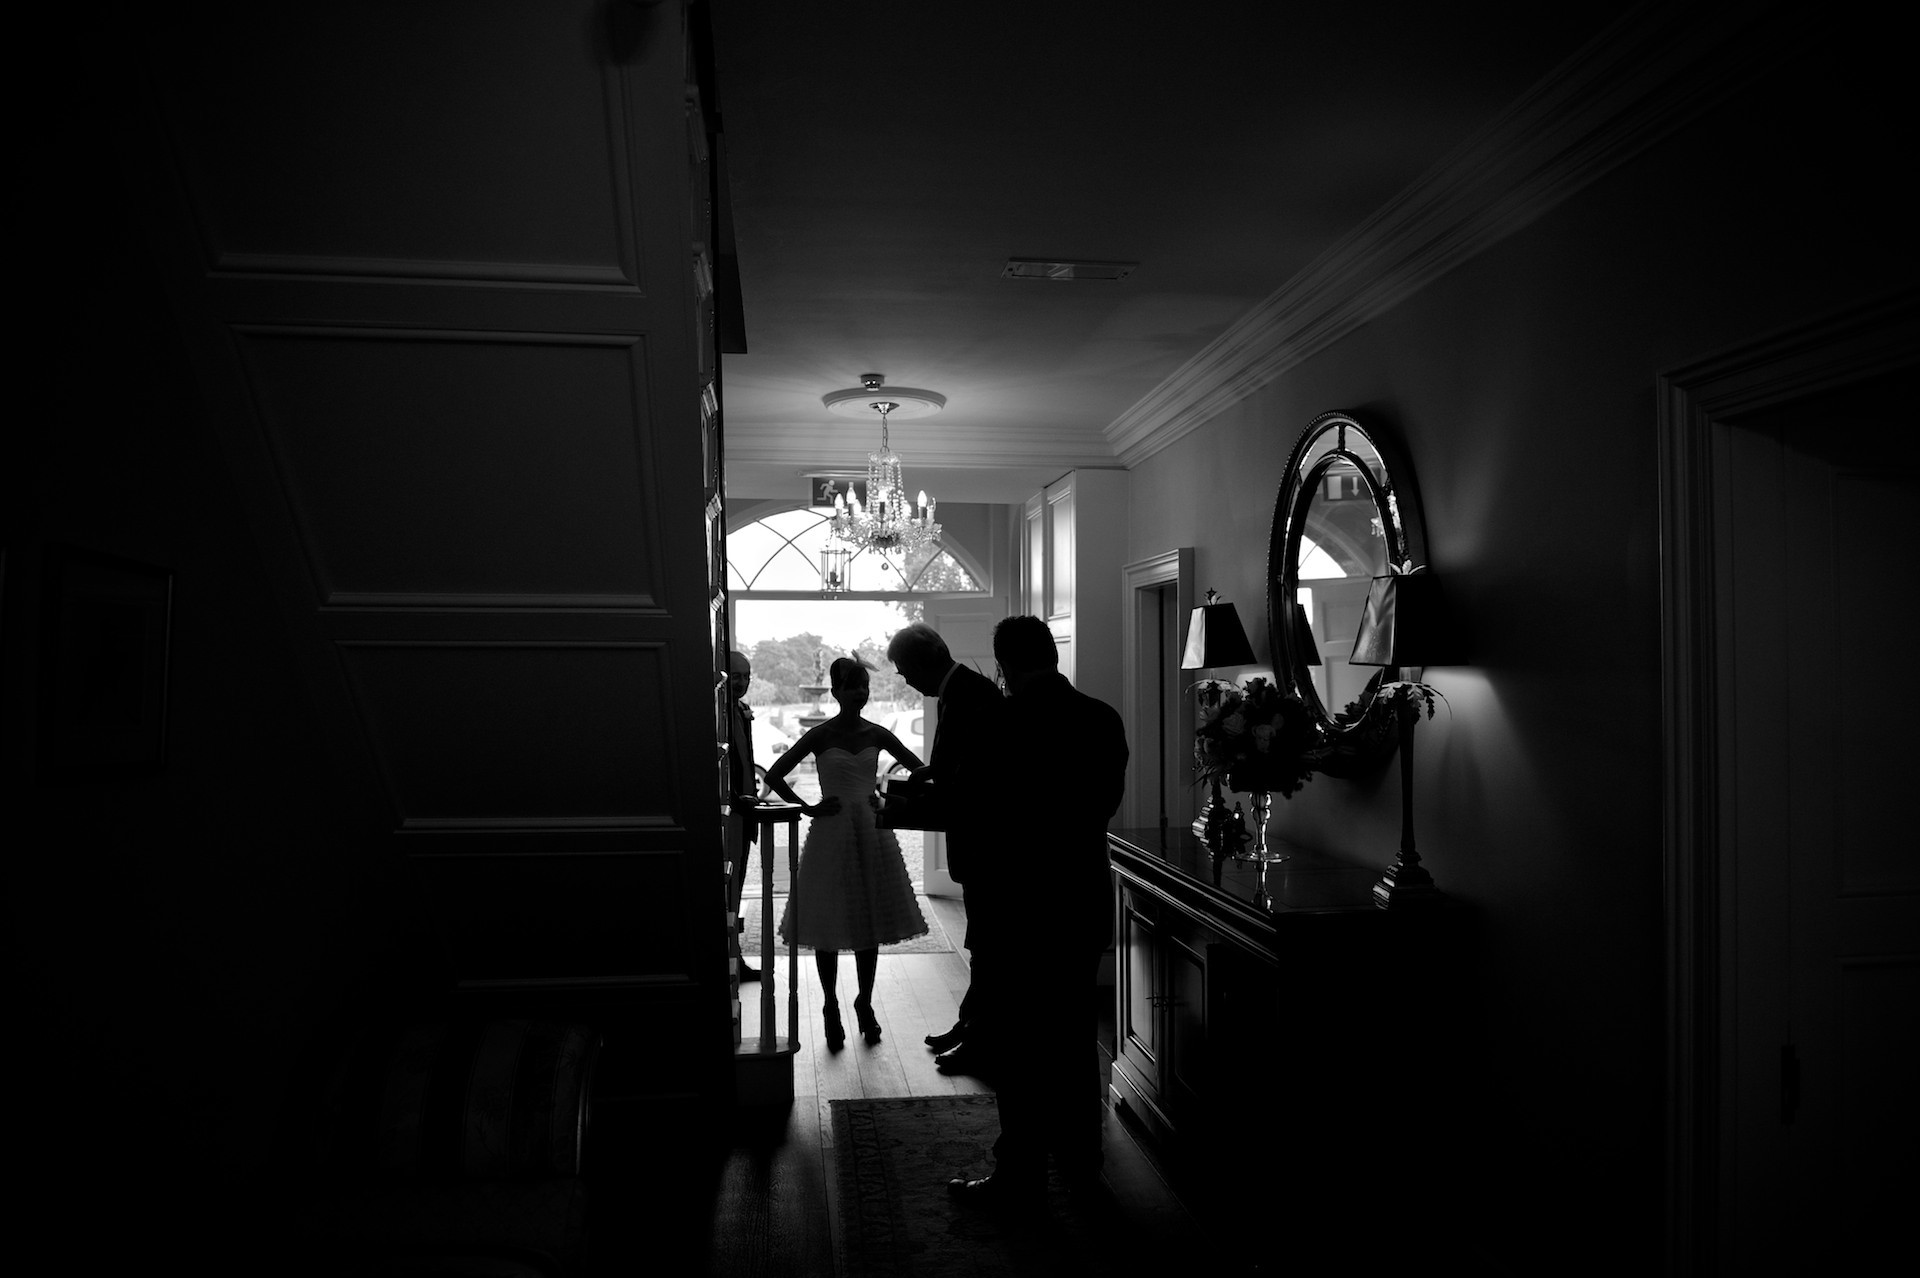 Bride in hall Ballymagarvey Village Wedding Meath